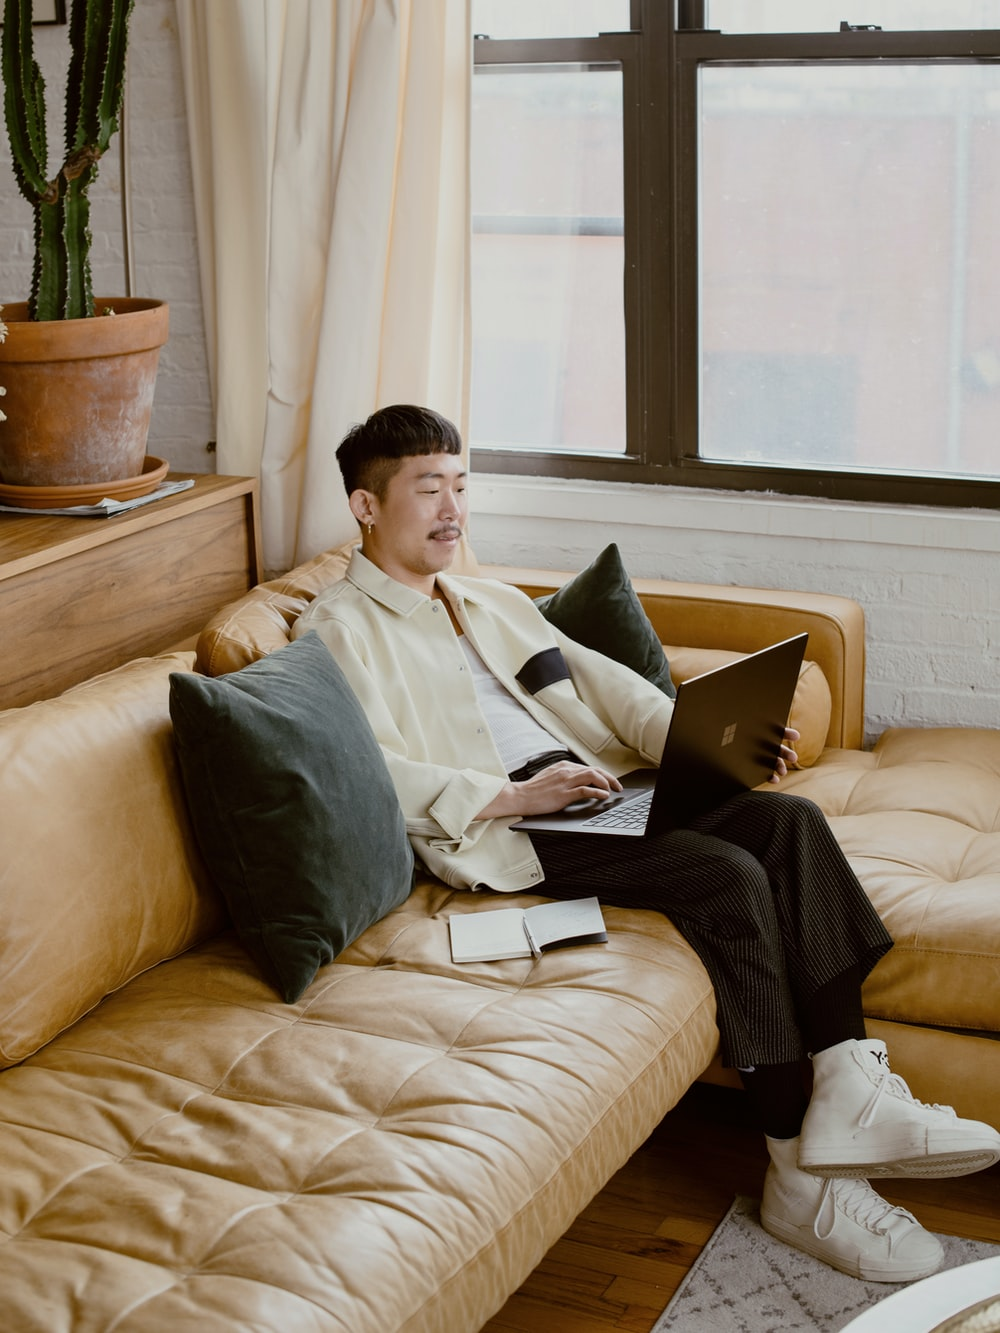 man in white dress shirt sitting on white couch using black Surface laptop